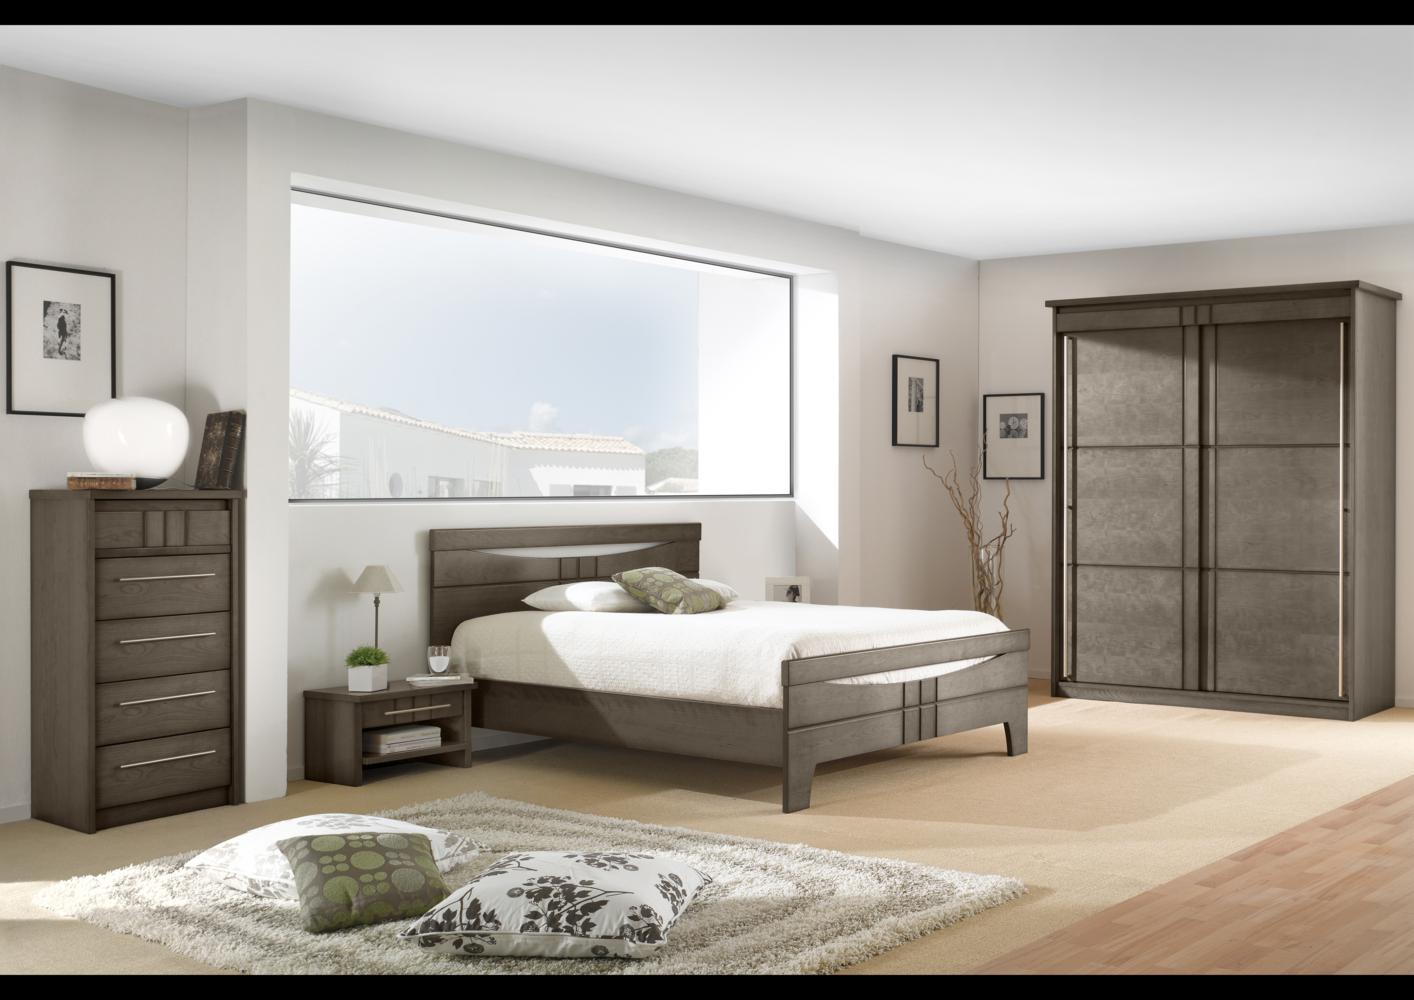 acheter votre lit contemporain placage merisier chez simeuble. Black Bedroom Furniture Sets. Home Design Ideas